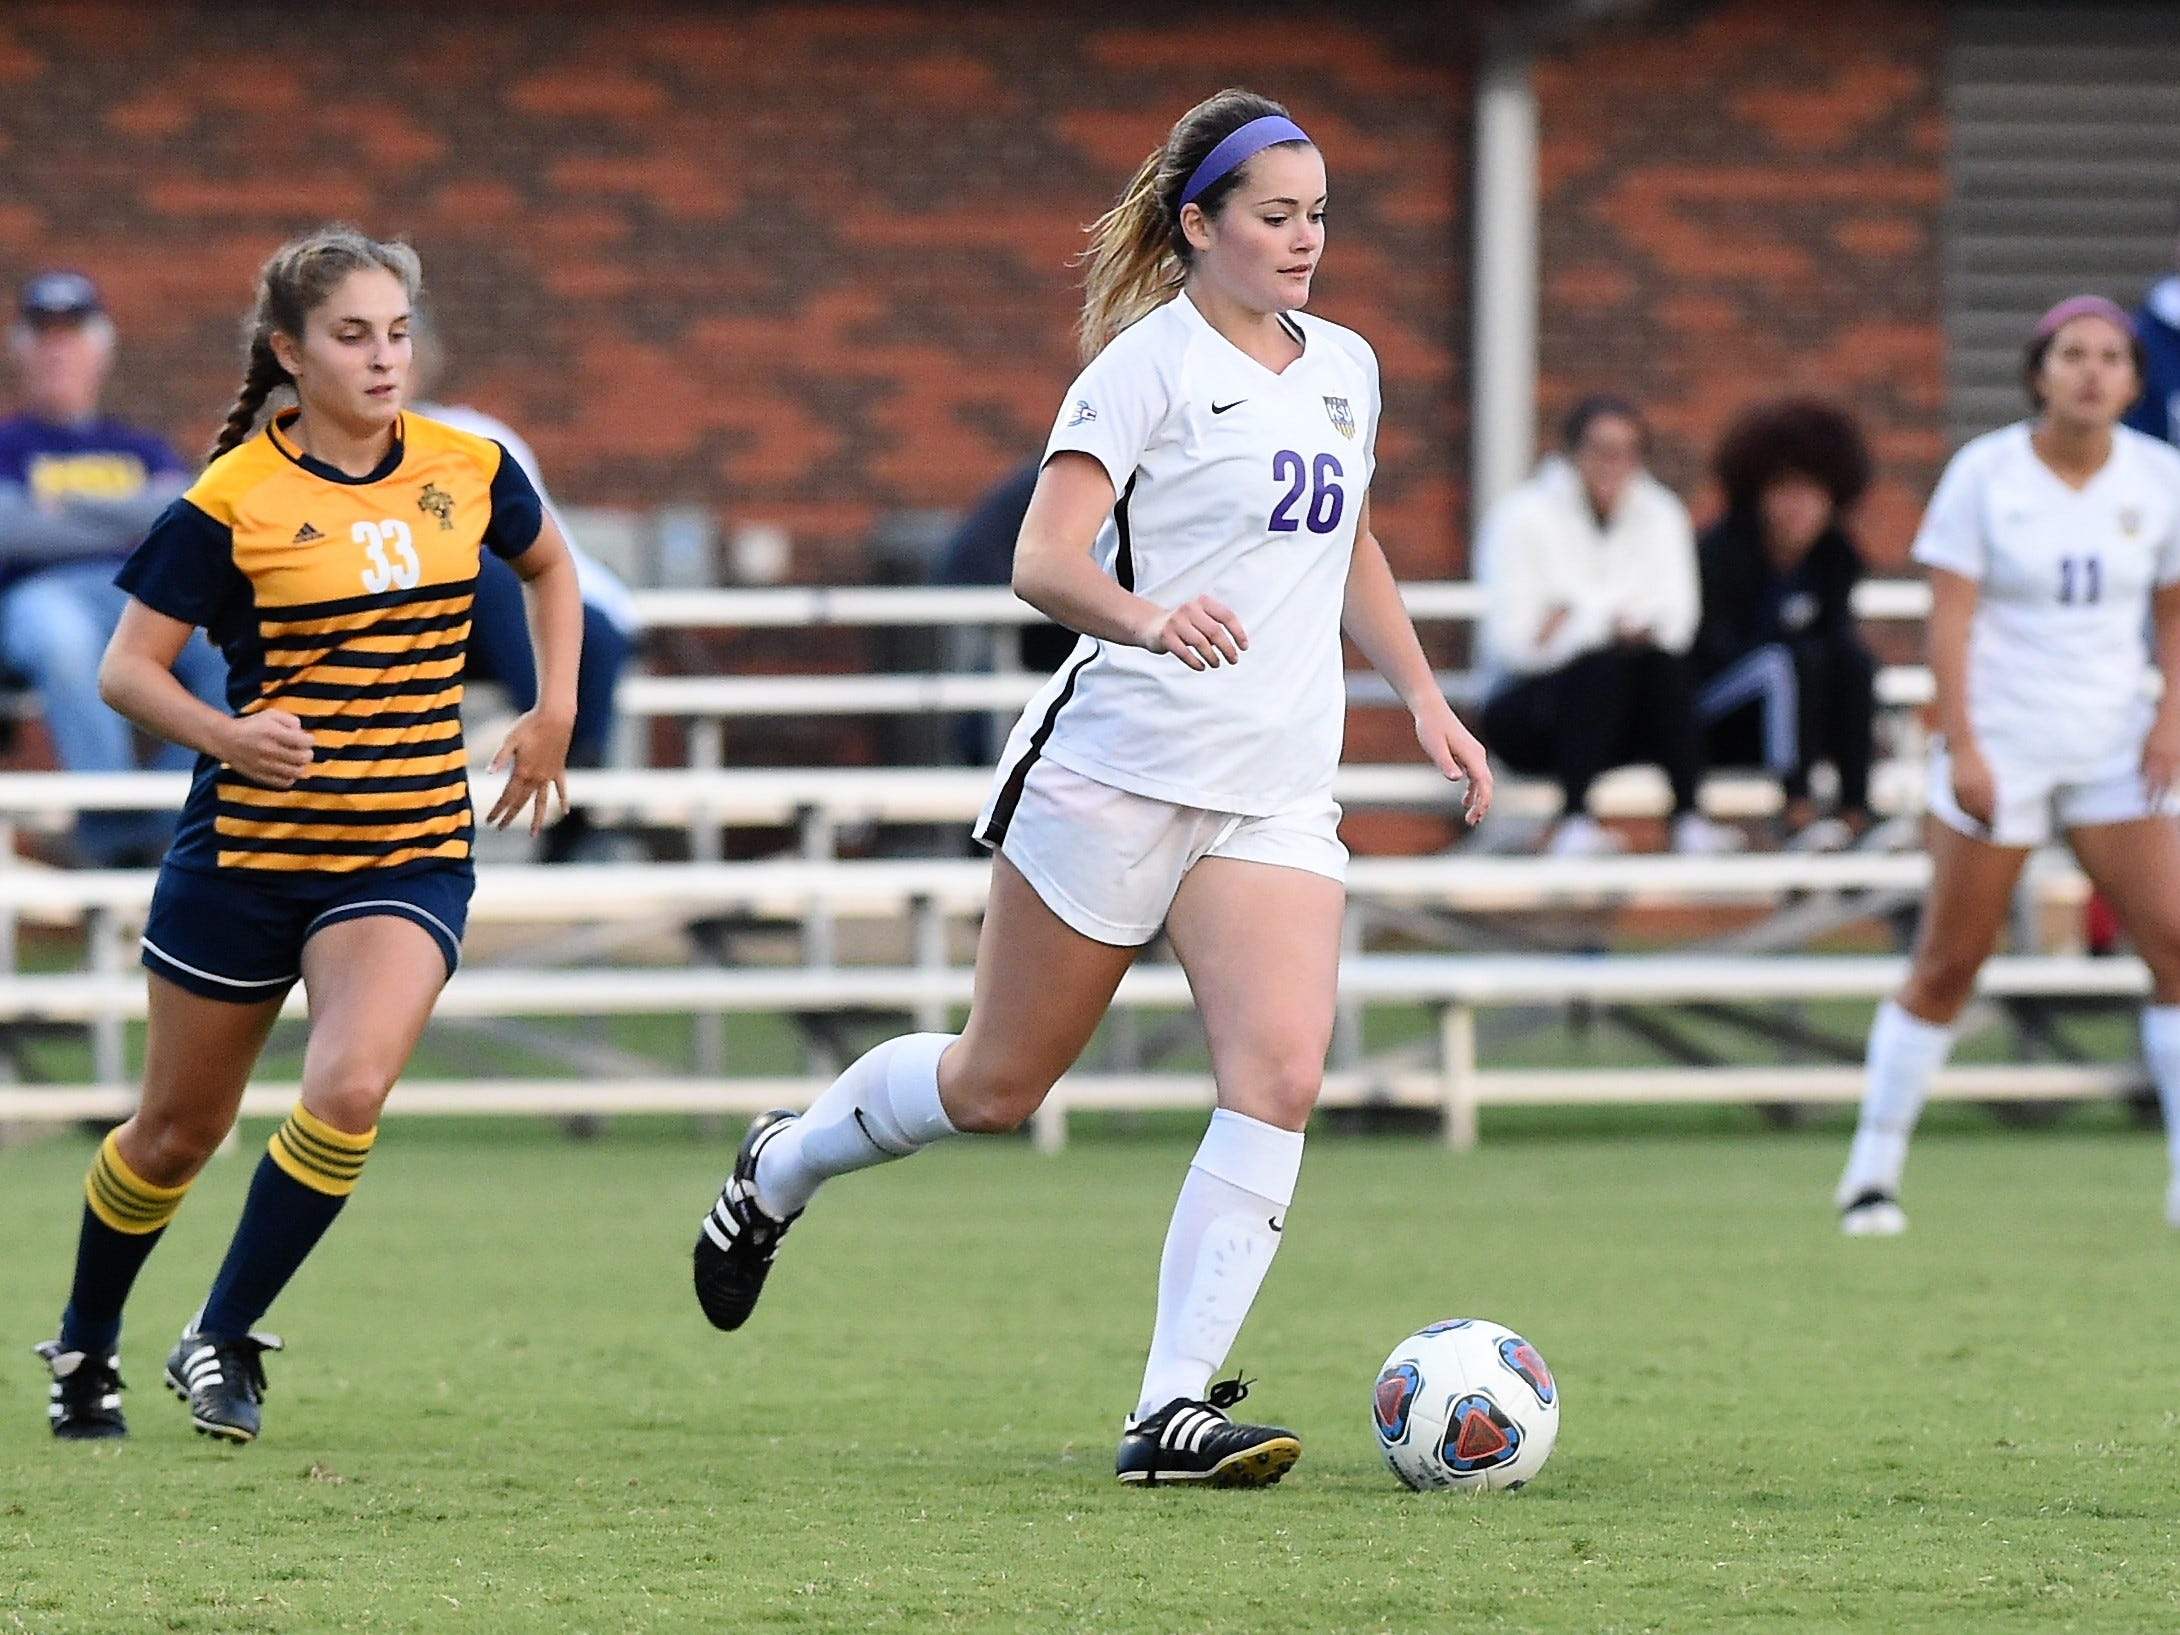 Hardin-Simmons midfielder Rachel Bean (26) controls the ball in space against Howard Payne at the HSU Soccer Complex on Thursday, Oct. 11, 2018. The Cowgirls won 4-1.